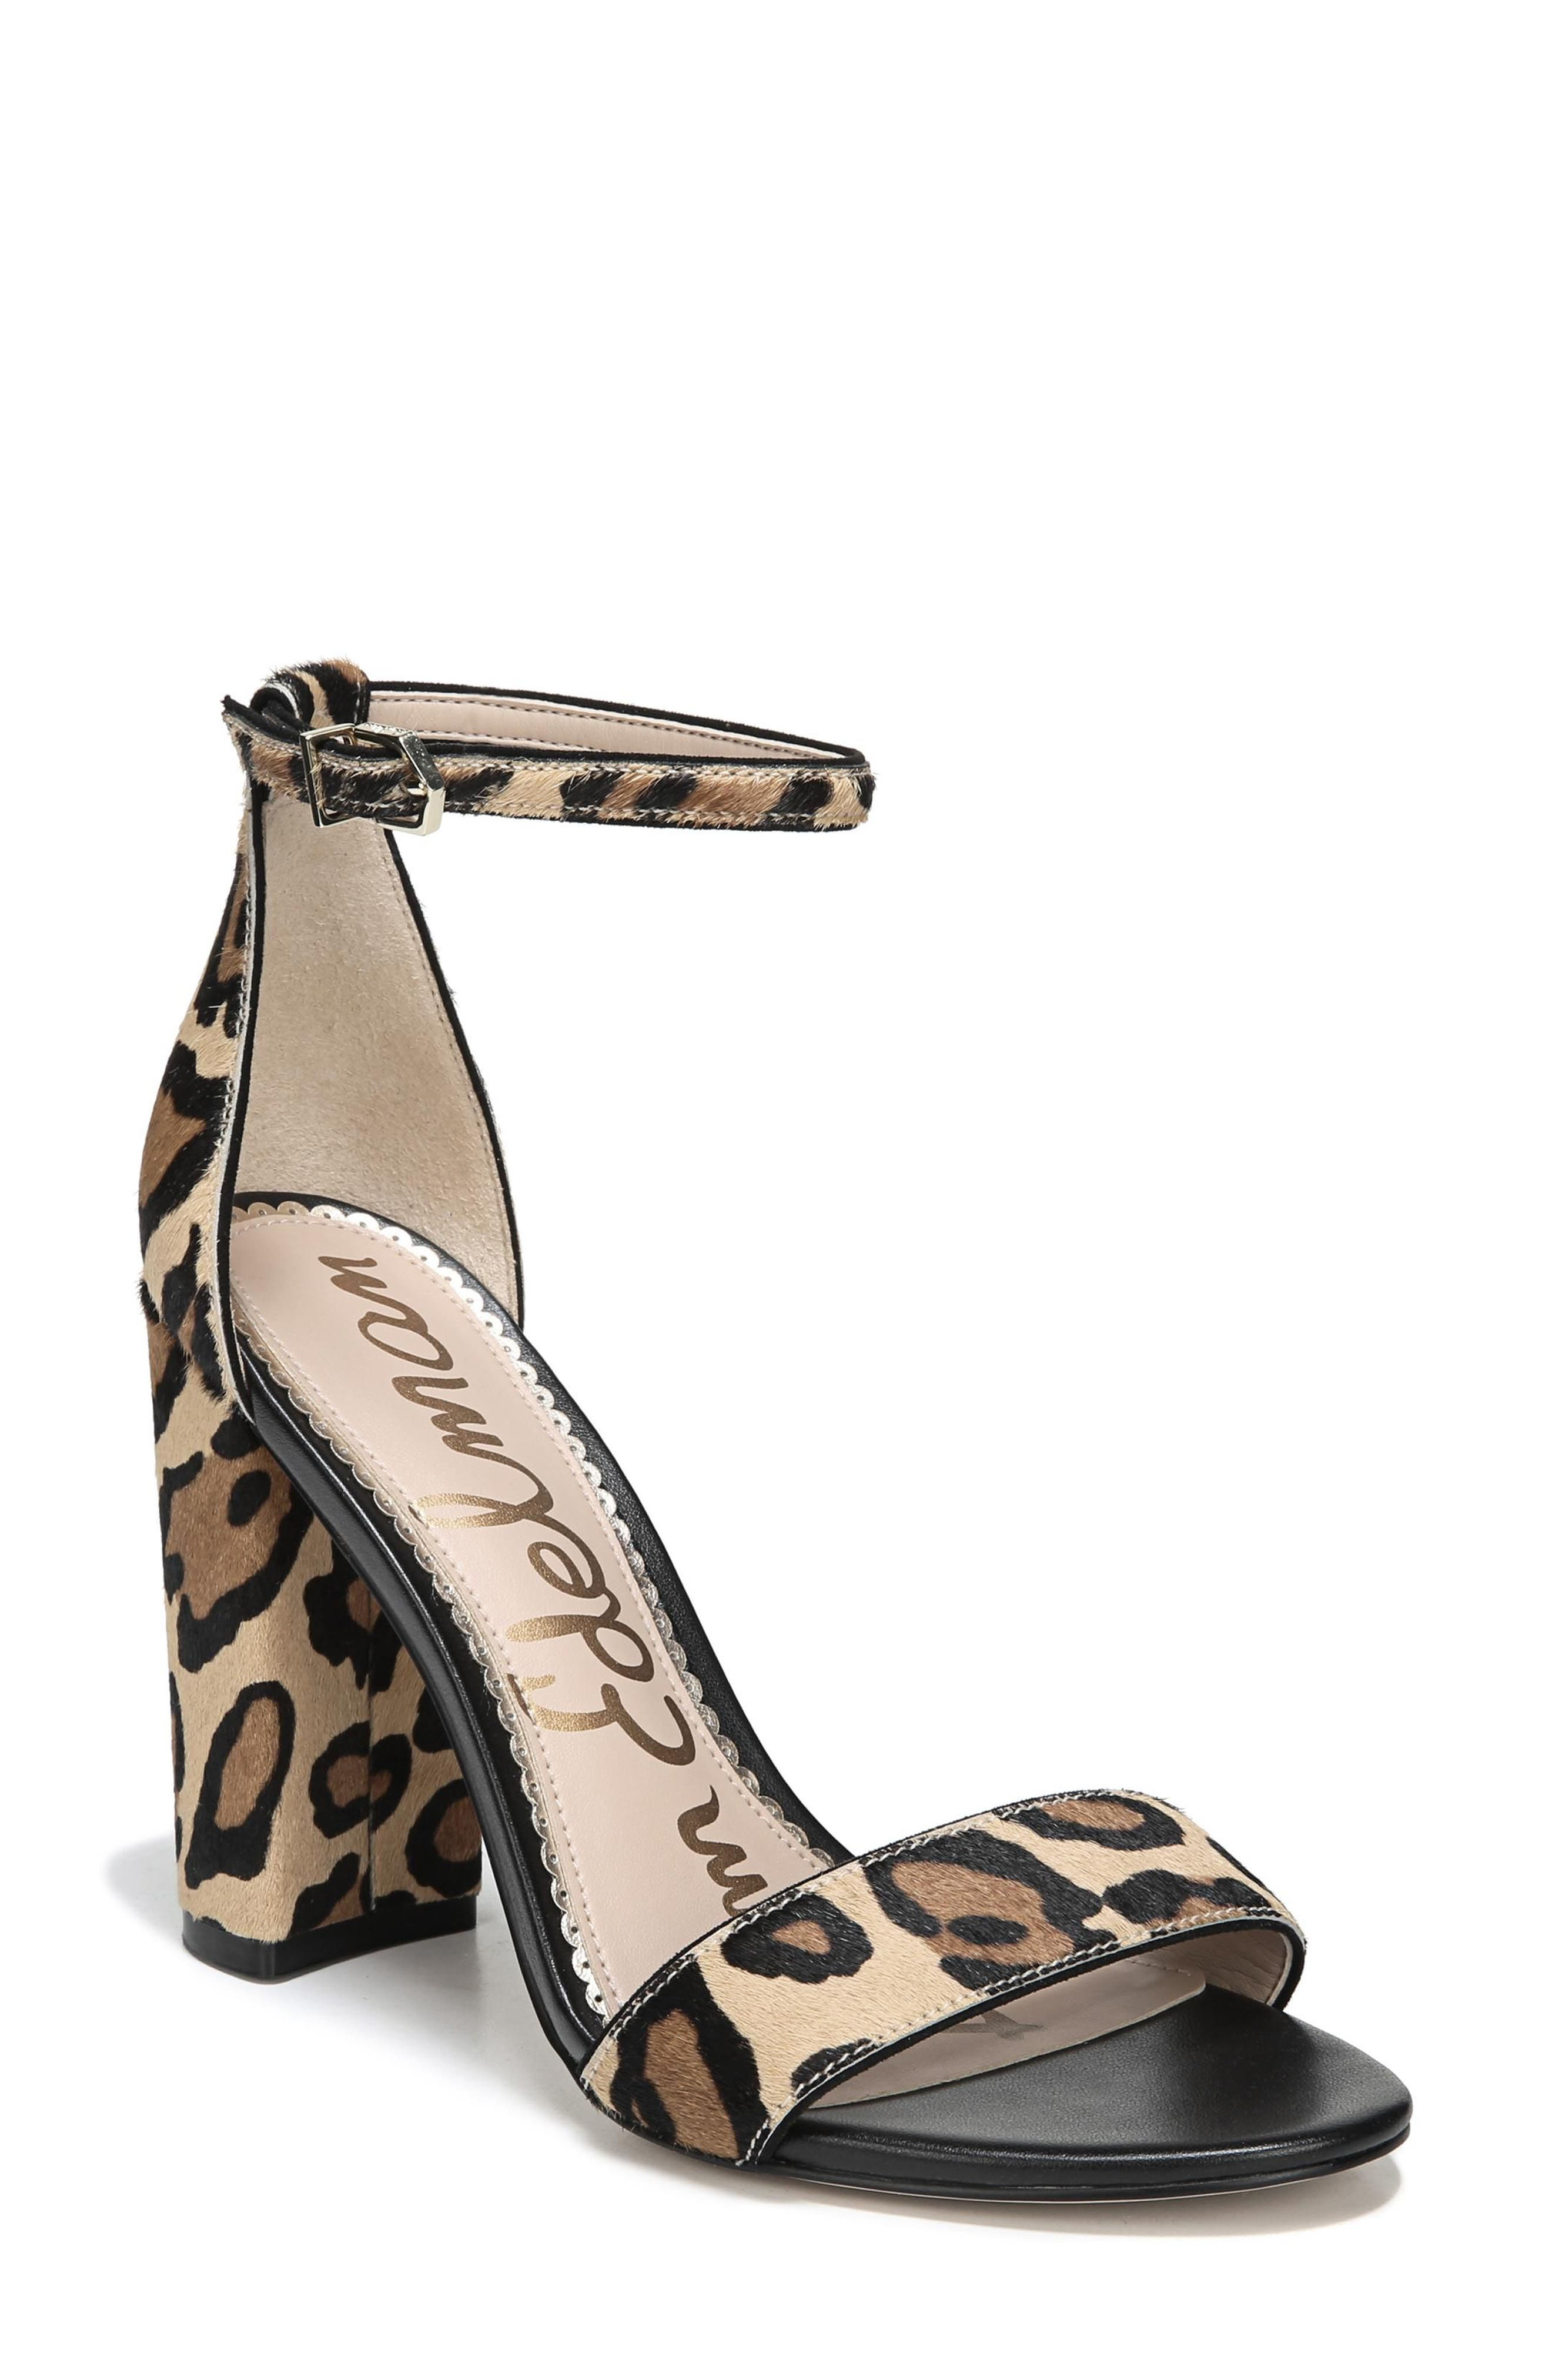 Yaro Ankle Strap Sandal,                             Main thumbnail 1, color,                             New Nude Leopard Calf Hair